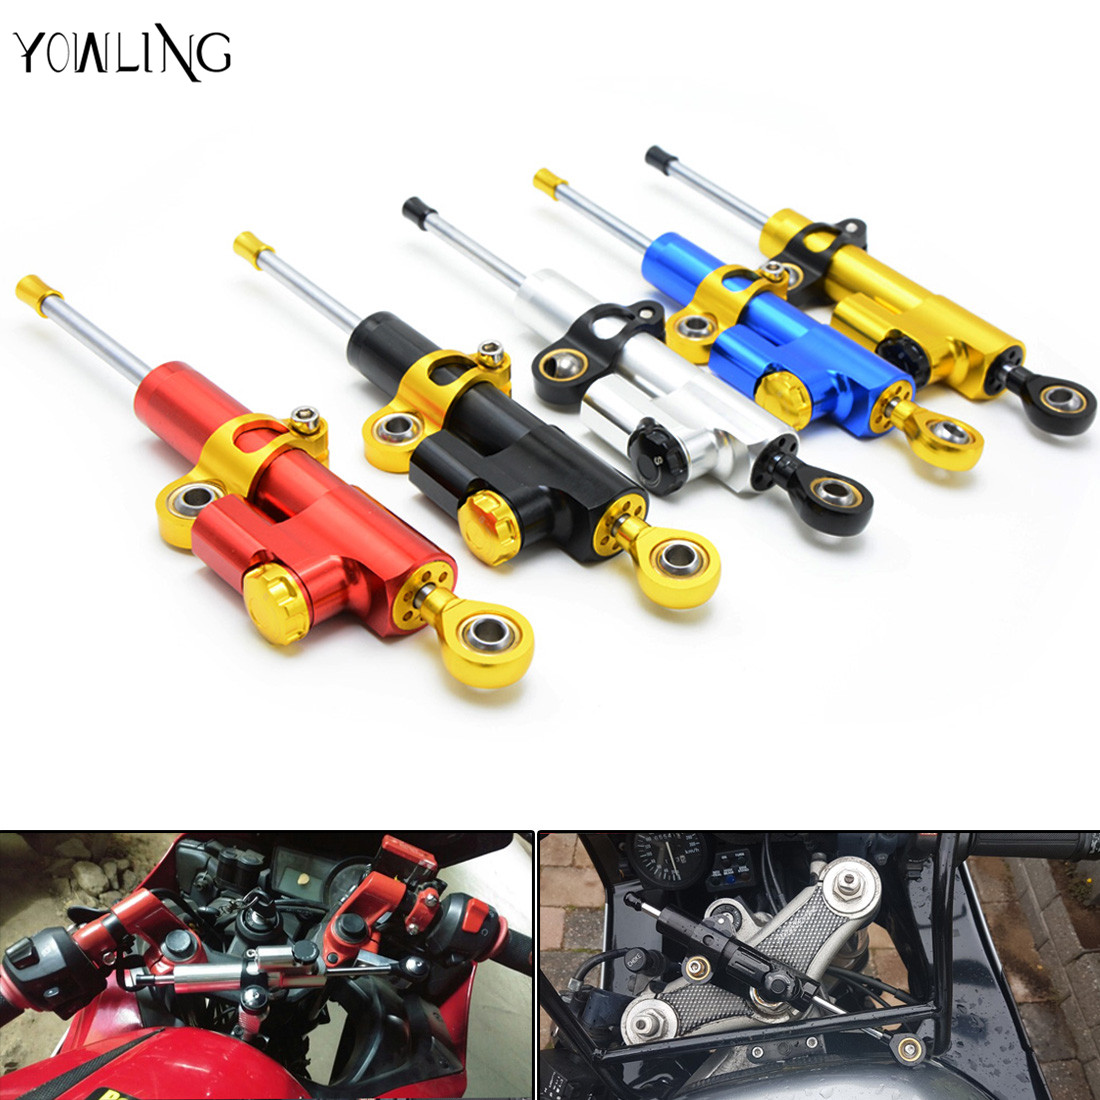 Universal Motorcycle Accessories Stabilizer Damper Steering For Kawasaki Z1000 Z800 Z750 EX-300 for honda cer 954 for Yamaha r1 for kawasaki z750 z800 z 750 z 800 universal motorcycle accessories stabilizer damper steering mounting all year